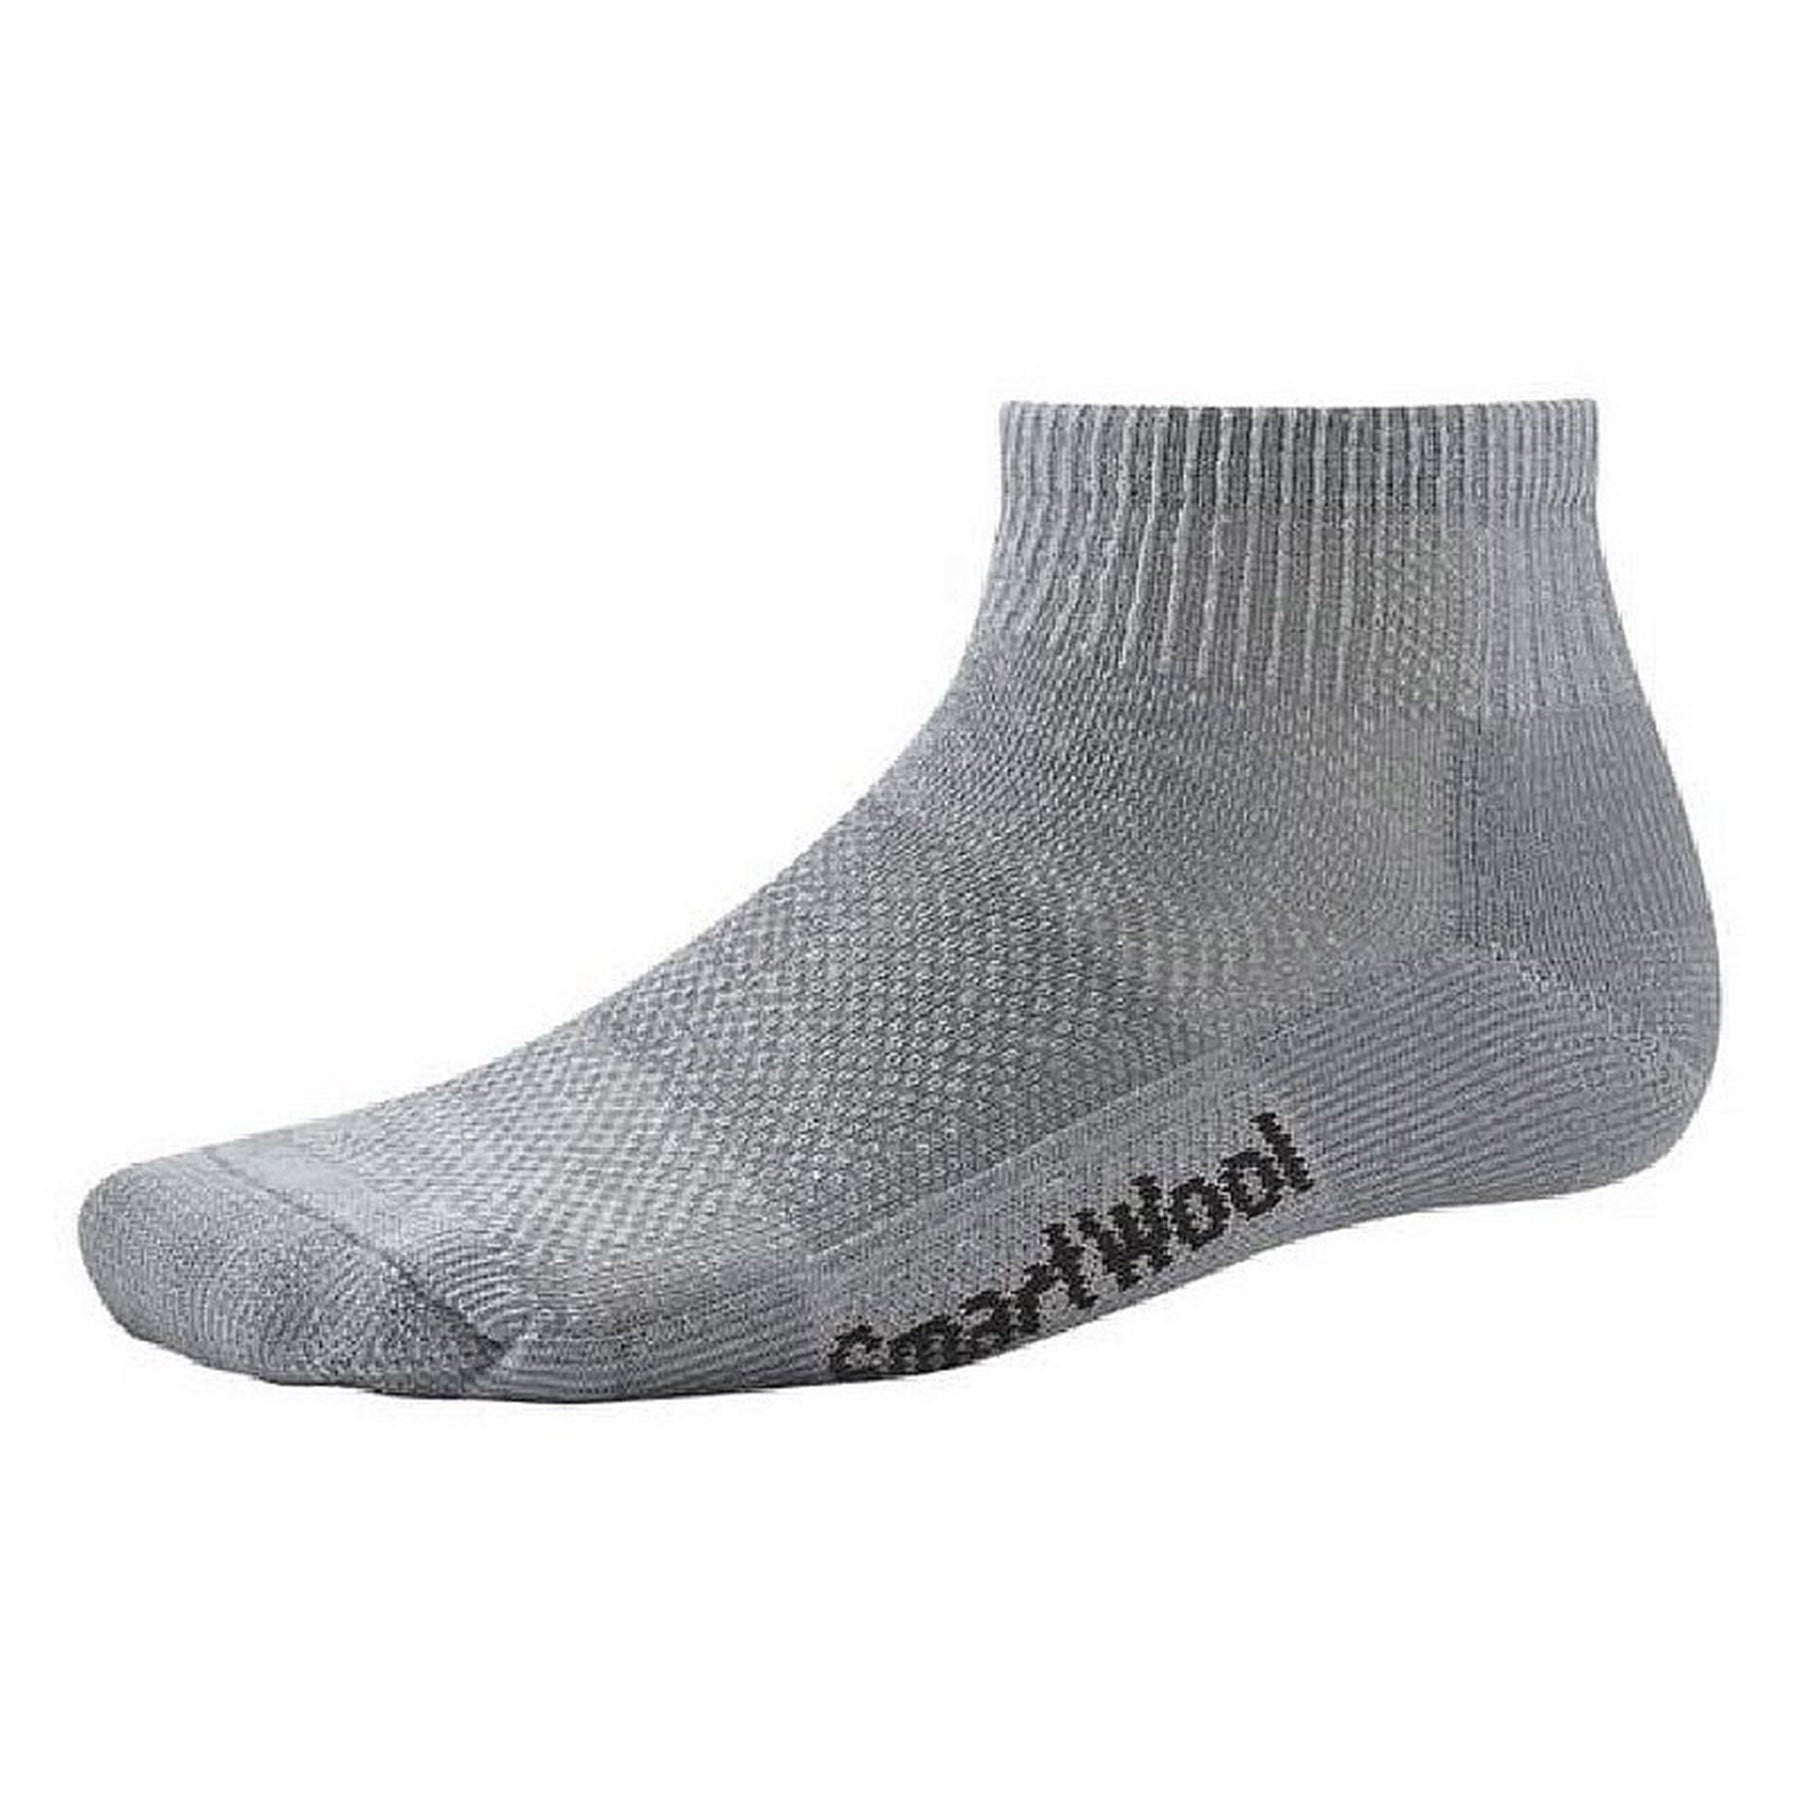 the sock in gray